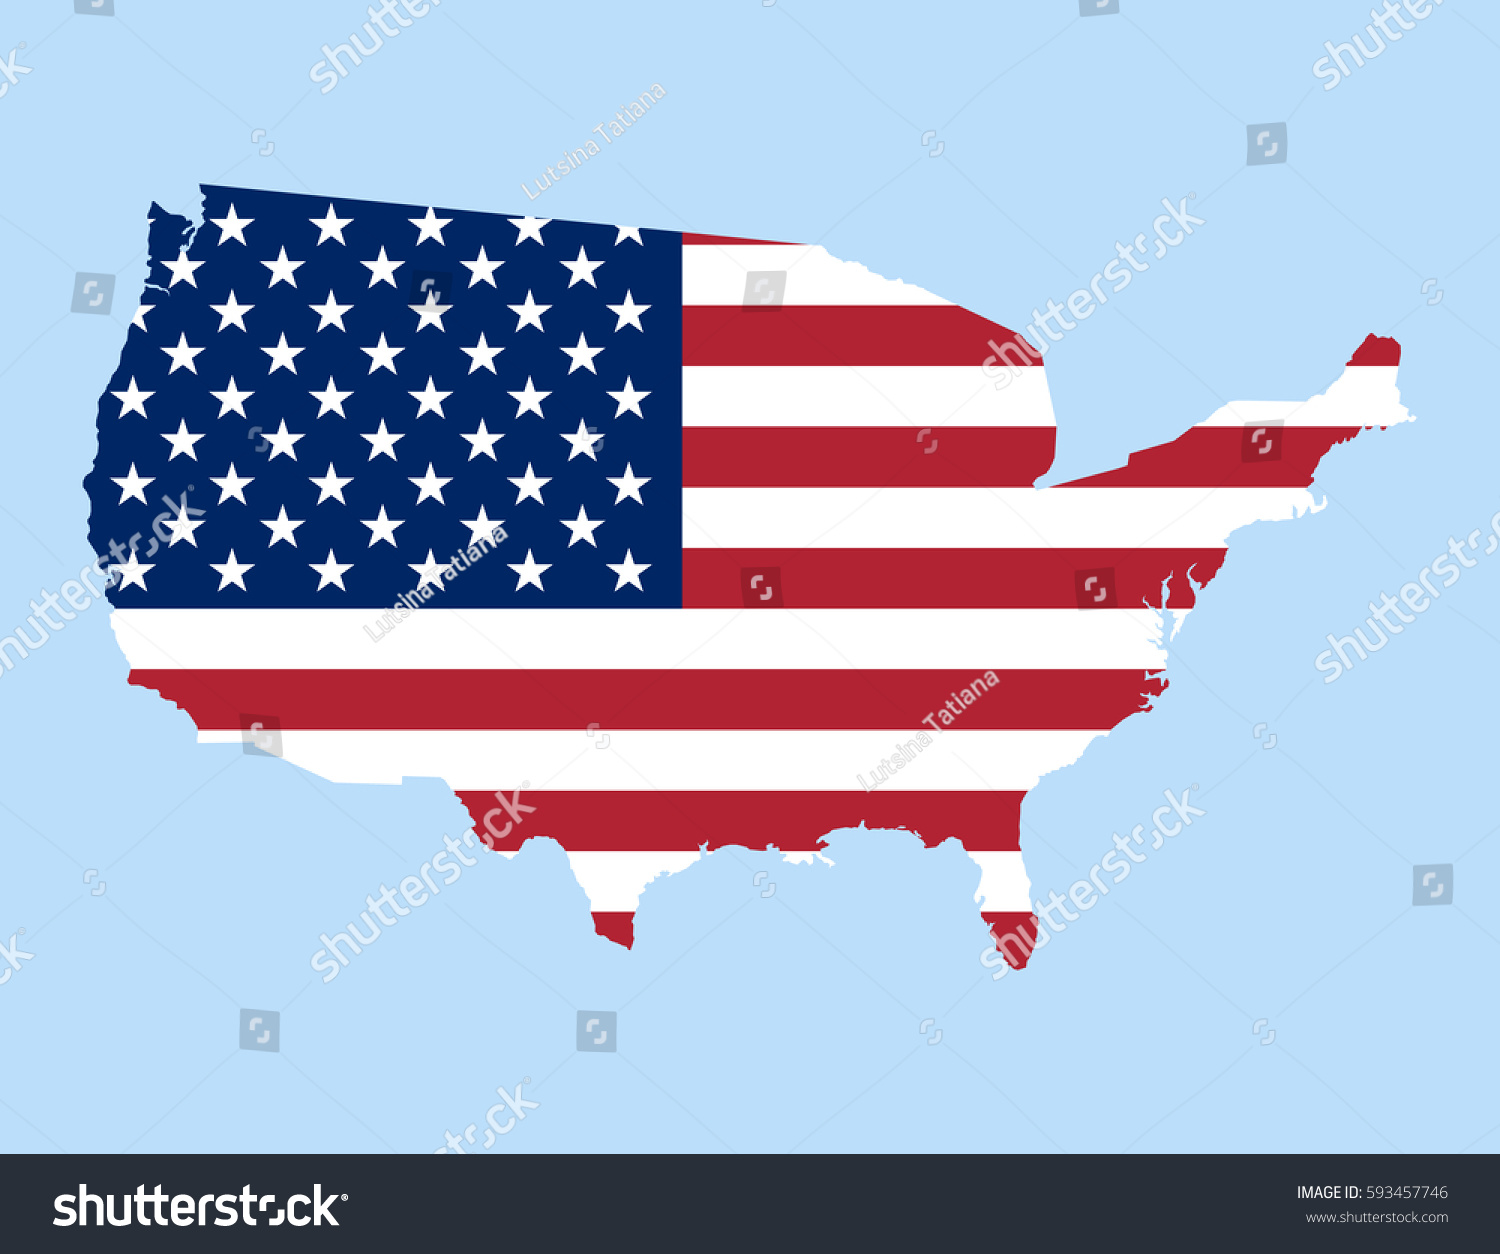 United States Vector Map Flag Inside Stock Vector 593457746